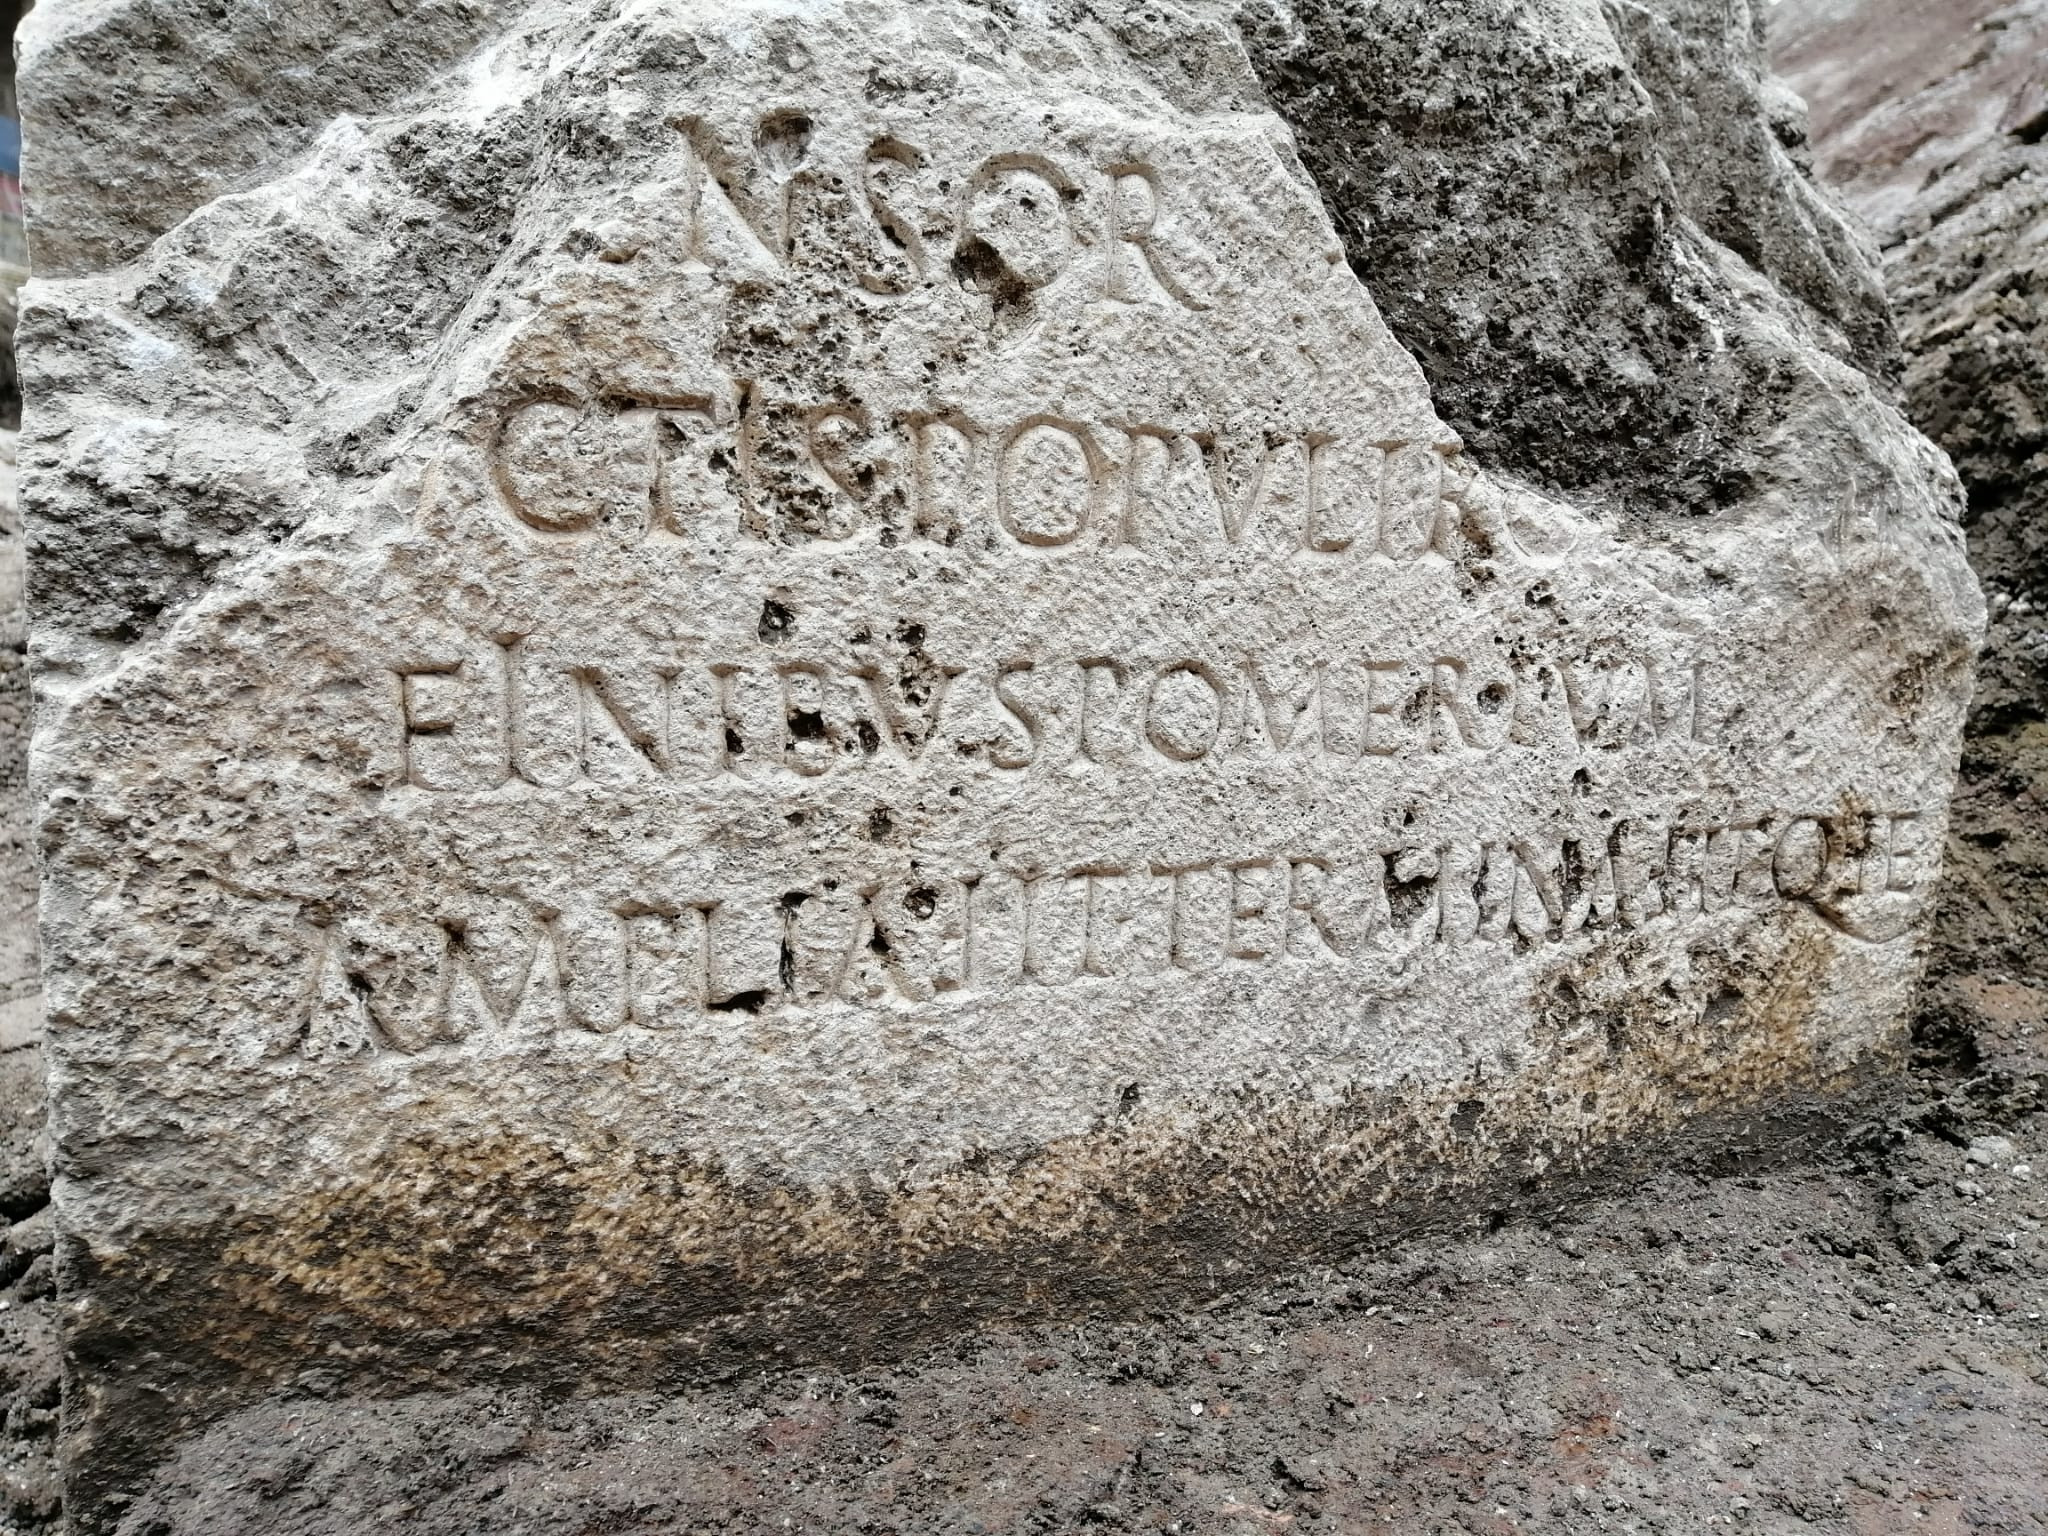 Rare stone marking the border of ancient Rome unearthed